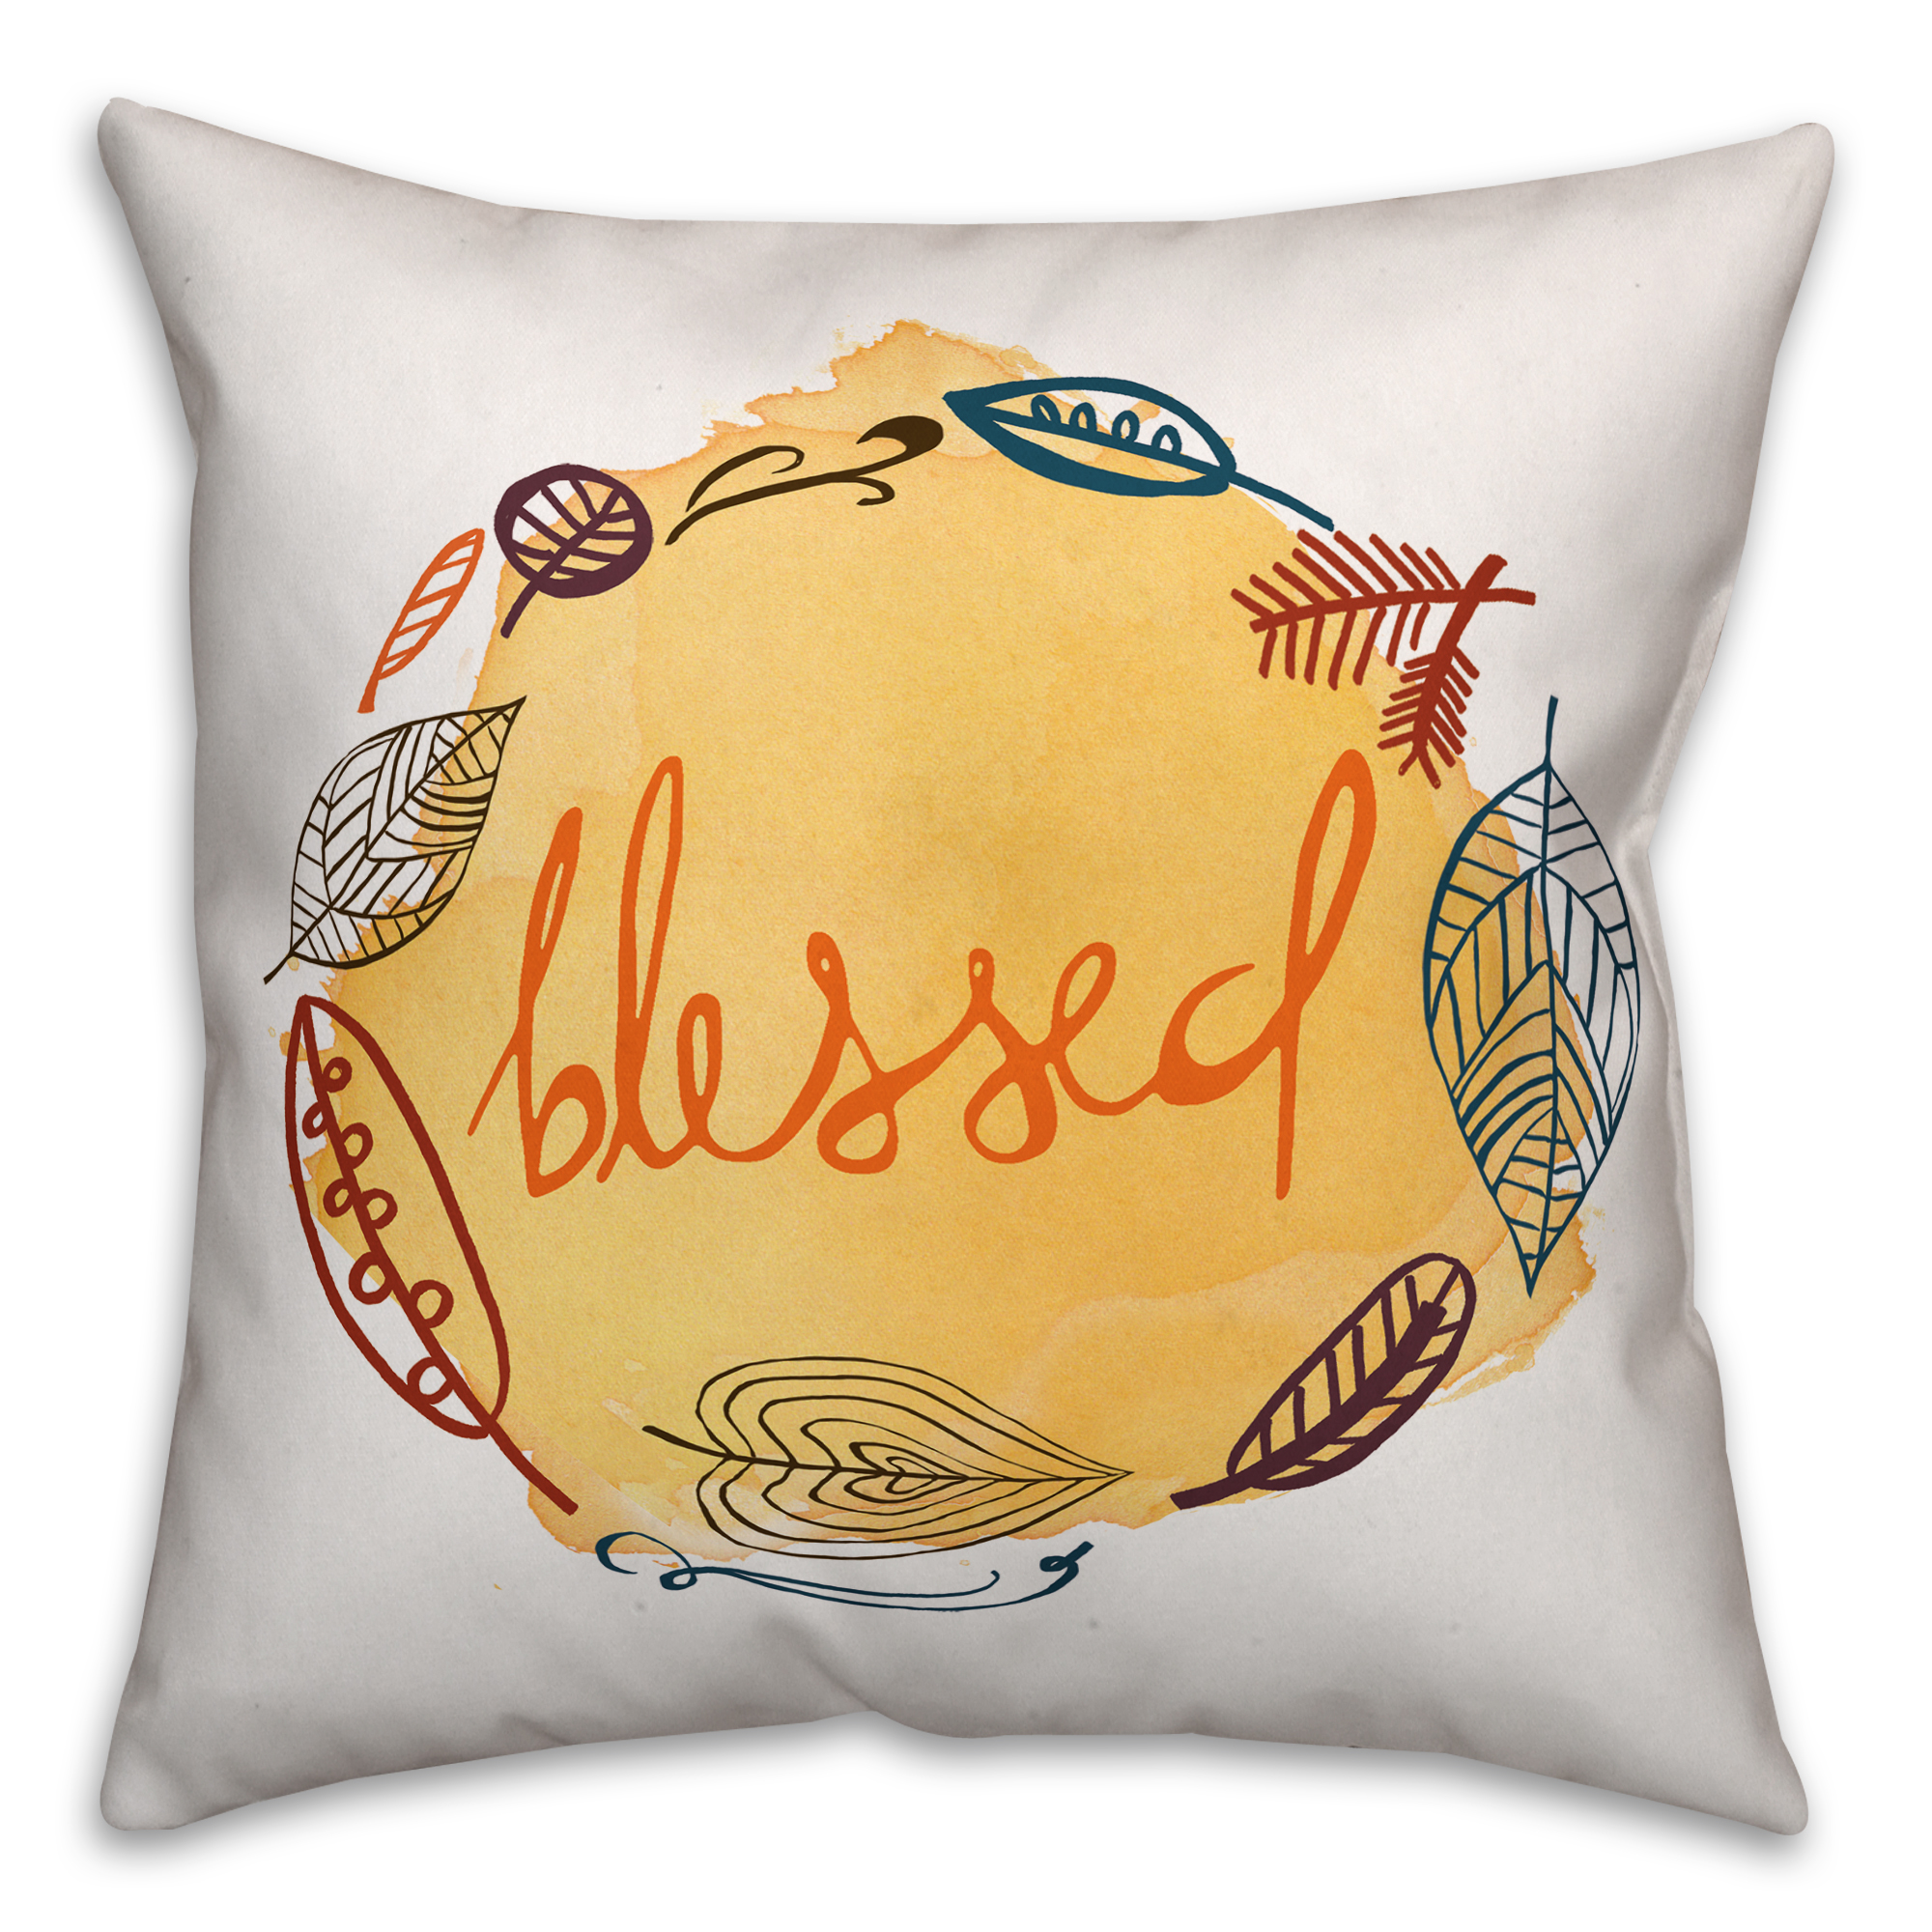 Harvest Blessed 18x18 Spun Poly Pillow Cover